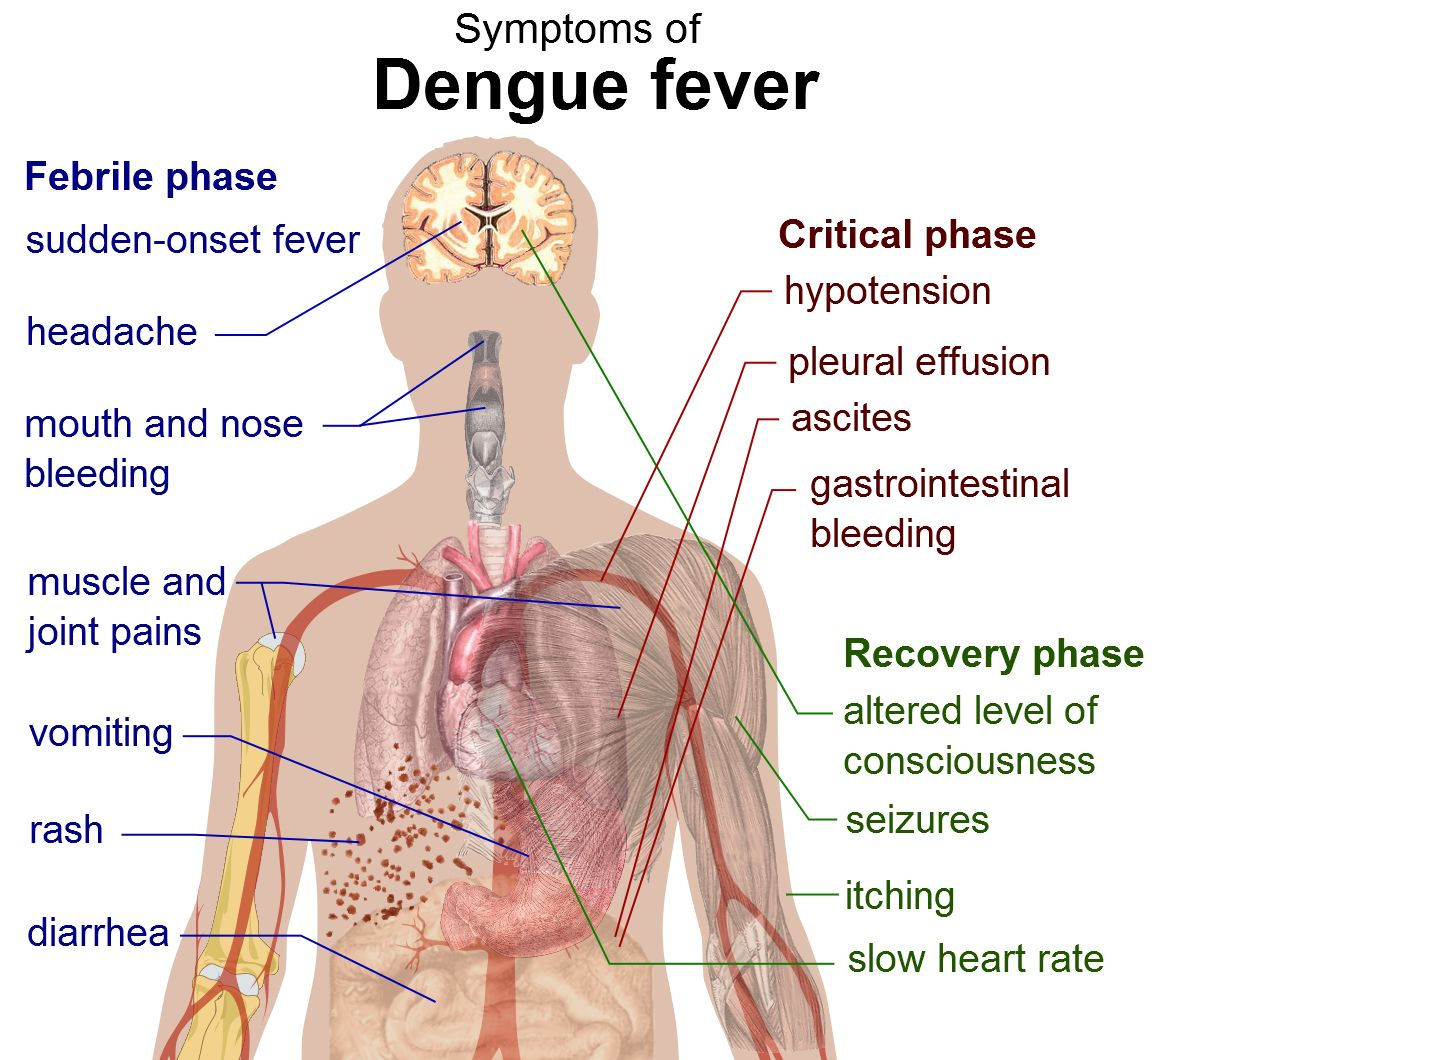 en academic ru pictures enwiki 68 Dengue fever symptoms svg